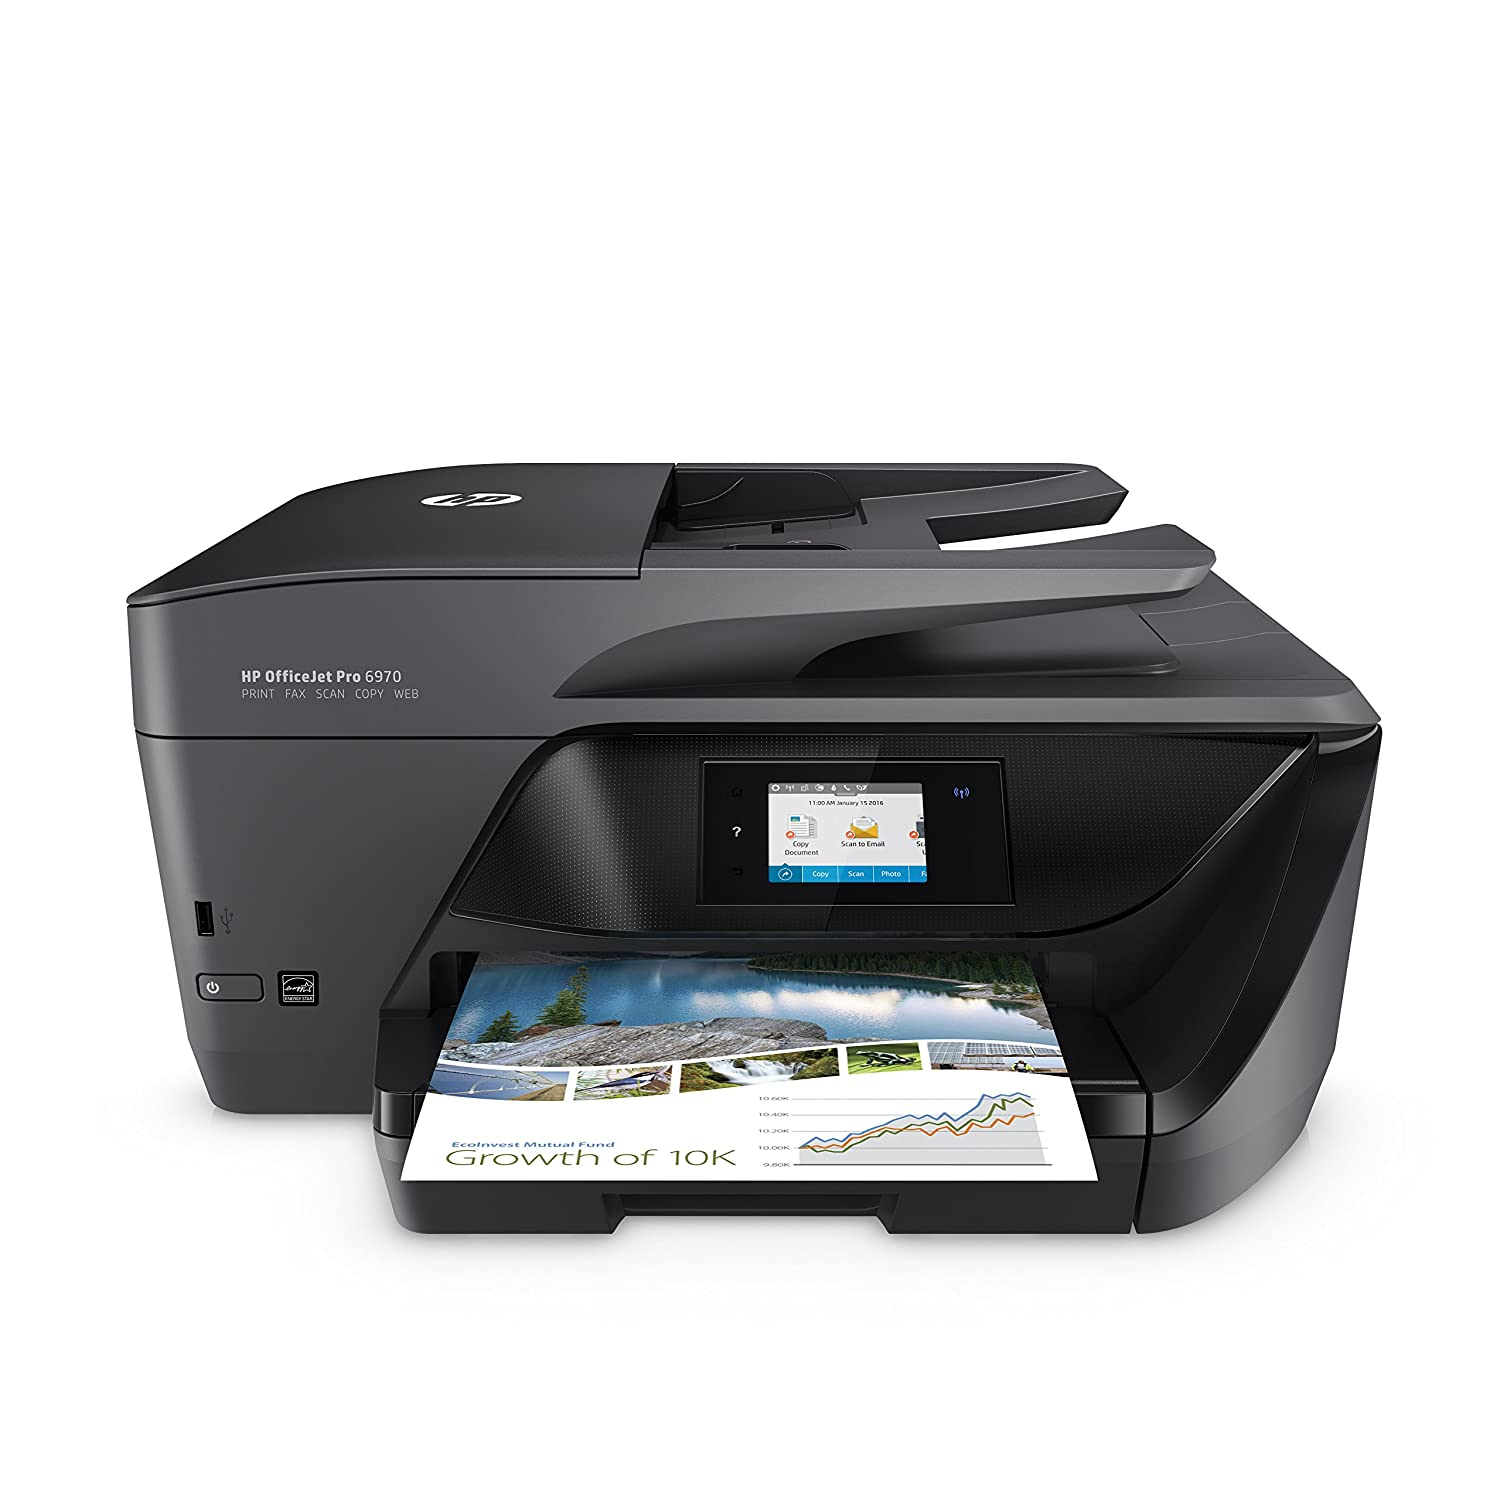 HP Officejet PRO 6970 2M3CS37